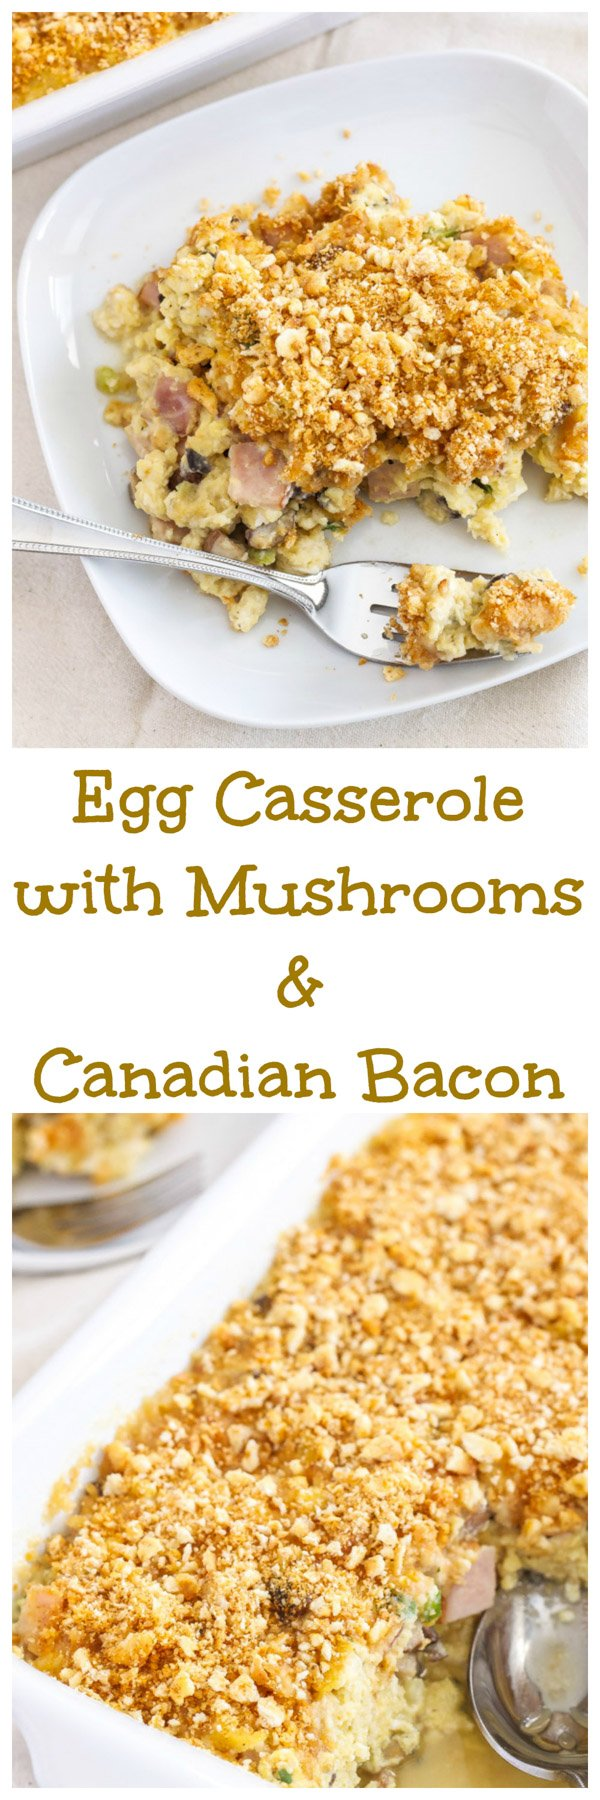 Egg Casserole with Mushrooms and Canadian Bacon | Make this egg ...